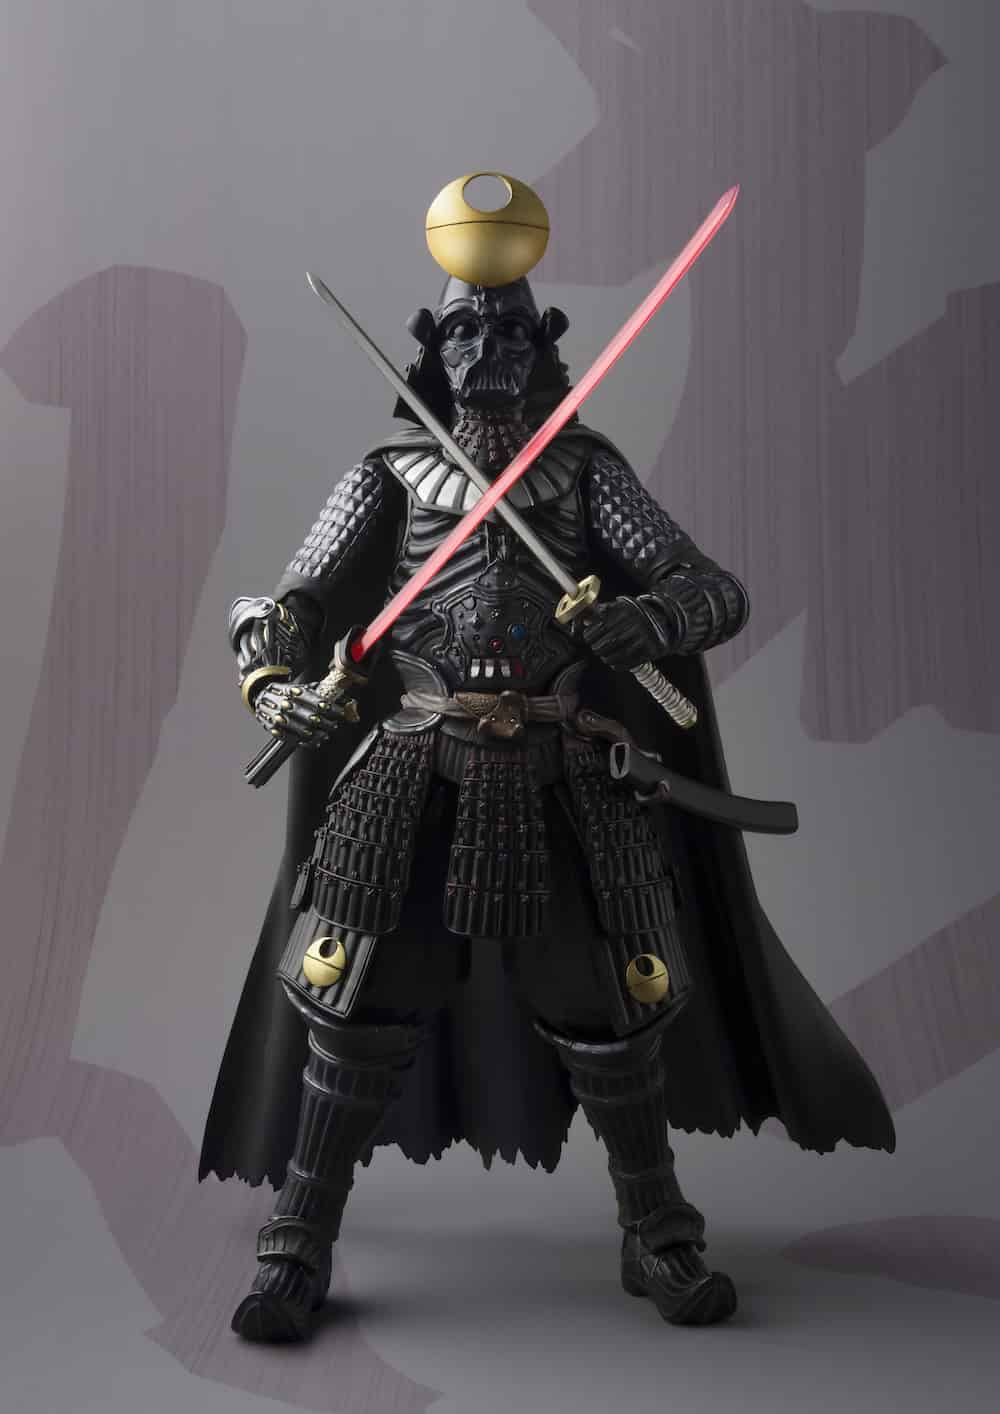 SAMURAI TAISHO DARTH VADER DEATH STAR VERSION FIGURA 18 CM STAR WARS MEI SHO MOVIE